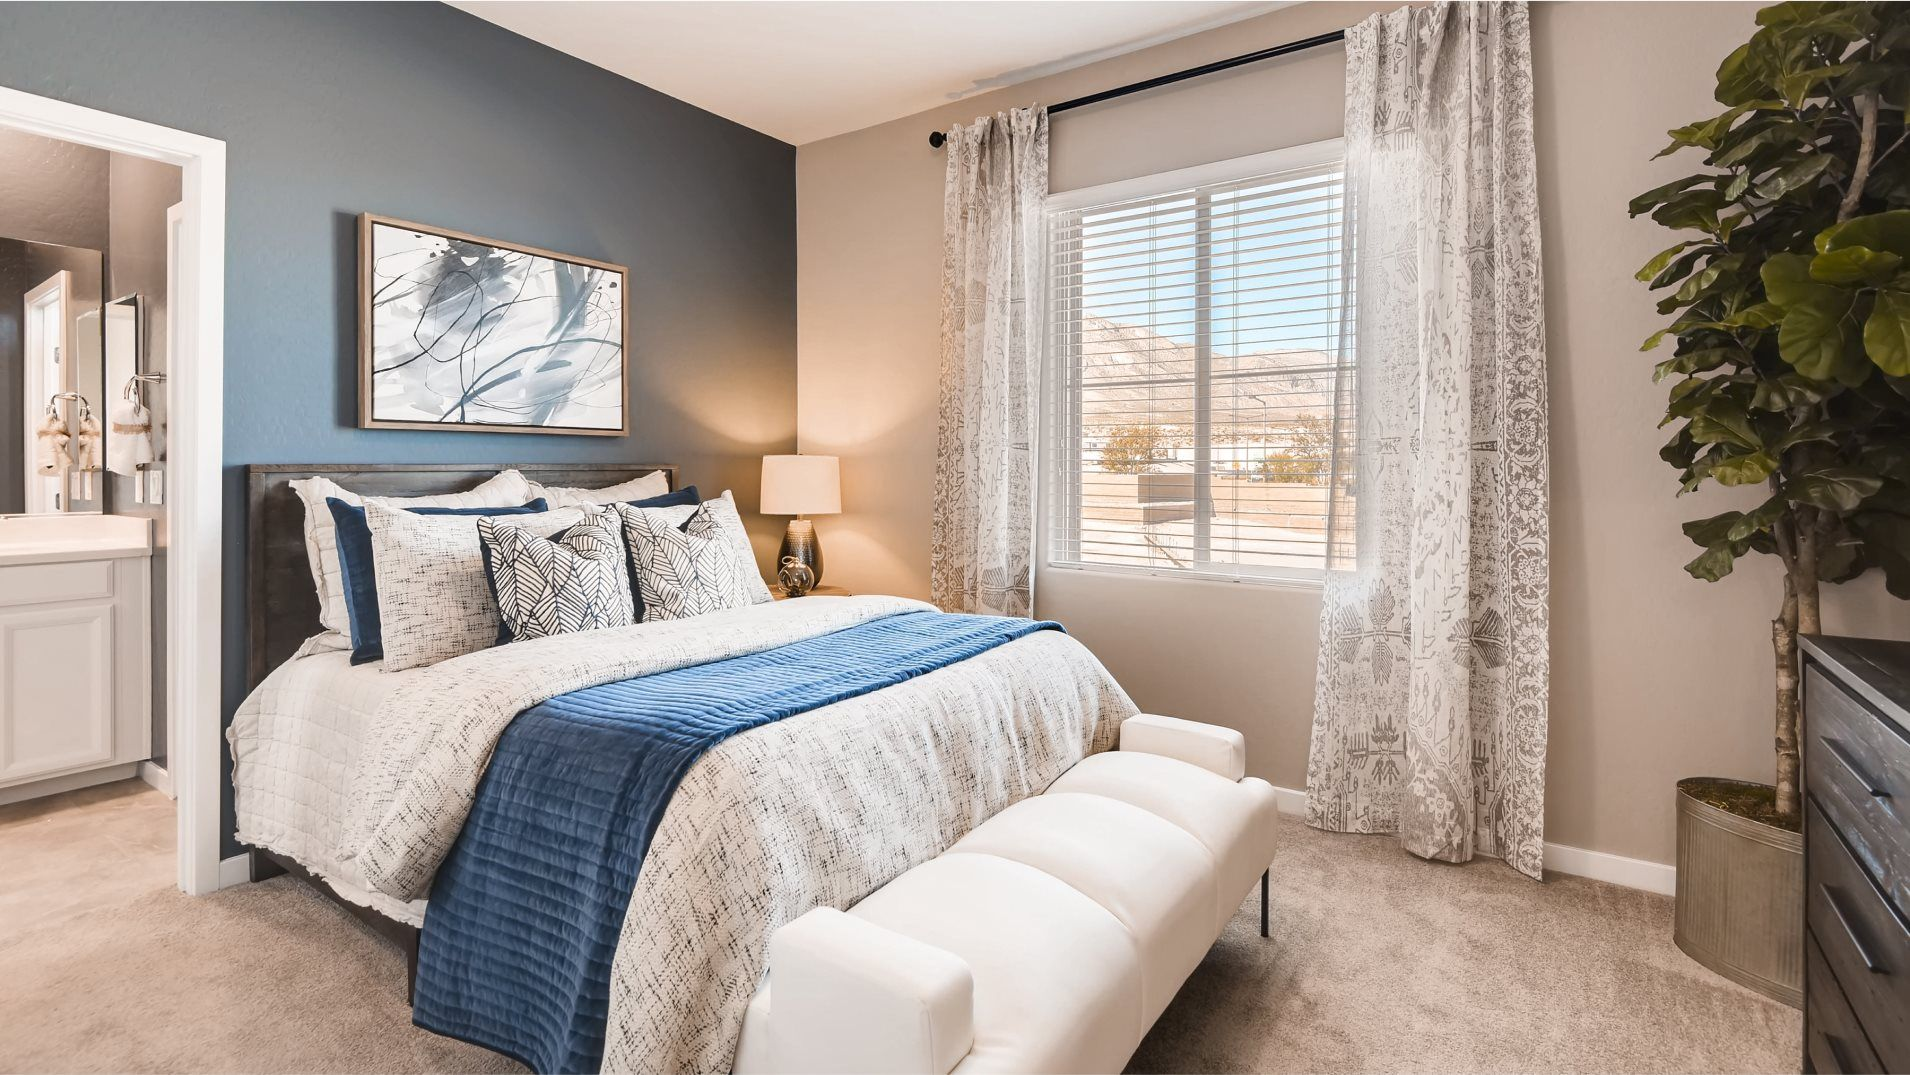 Summerlin Westcott Morgan Owner's Suite Bedroom:Two secondary bedrooms found upstairs offer ample space for younger family members, or even overnigh